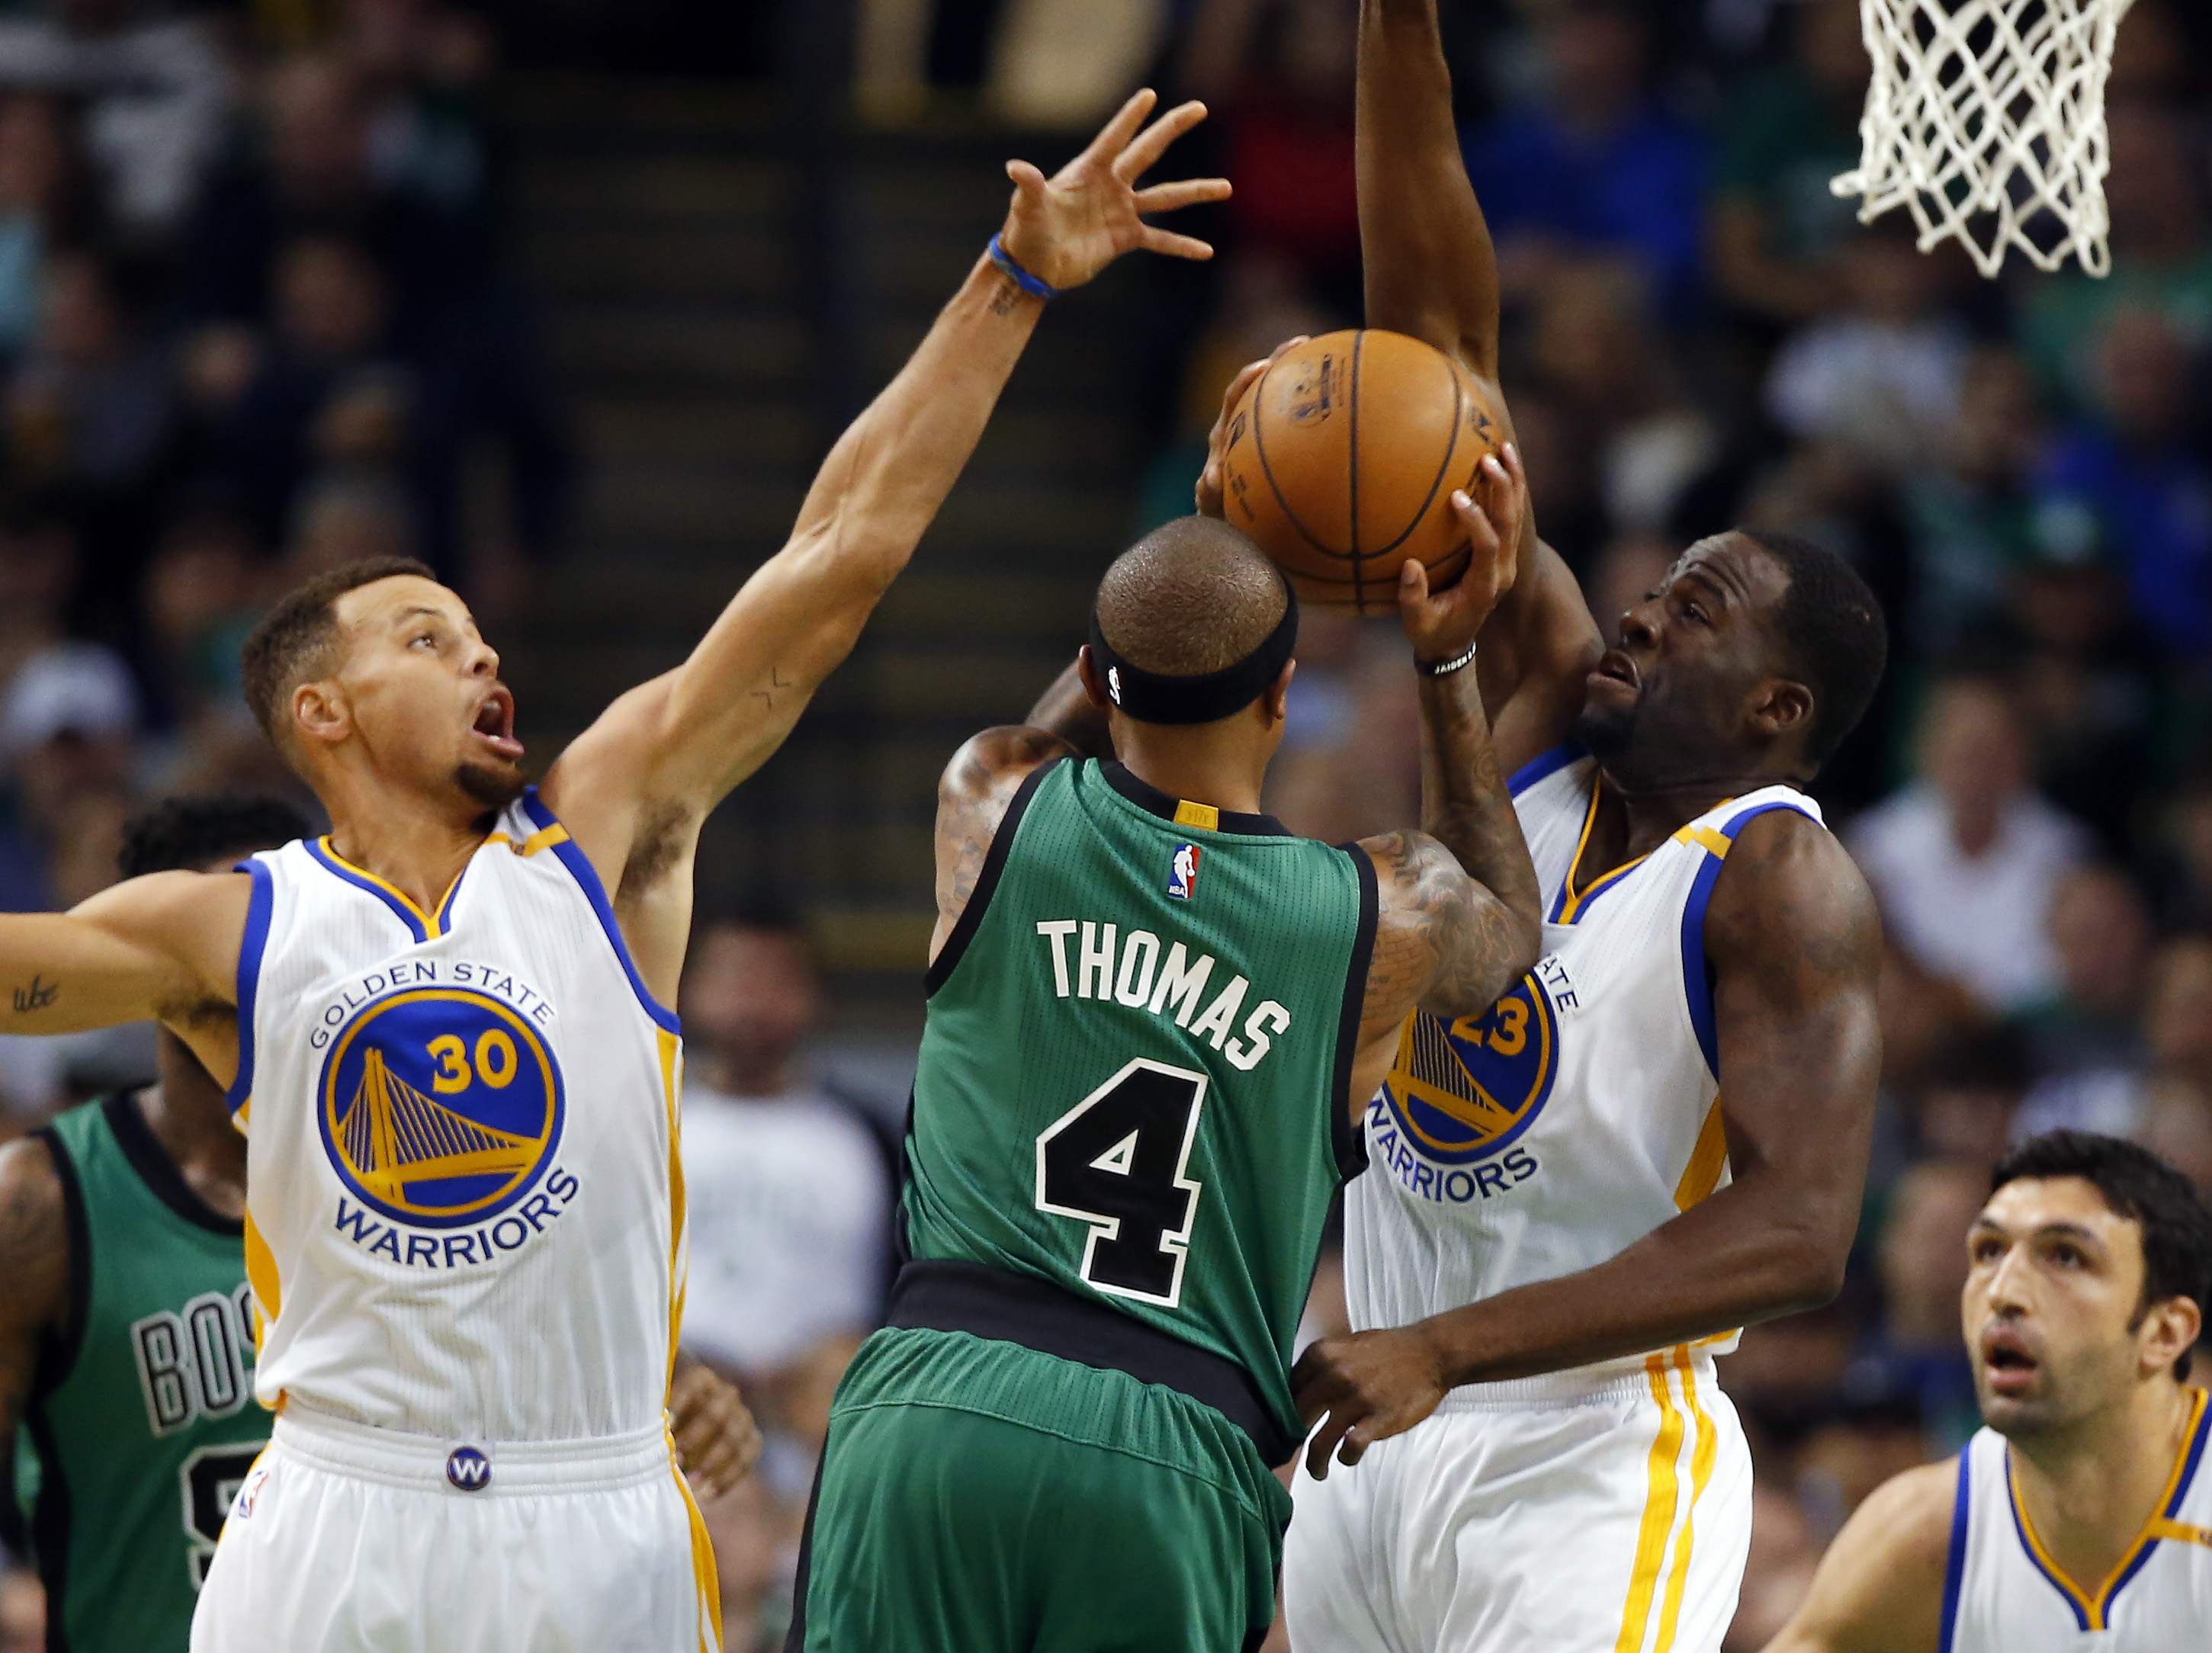 Nov 18, 2016; Boston, MA, USA; Boston Celtics guard Isaiah Thomas (4) tries to get between Golden State Warriors guard Stephen Curry (30) and Golden State Warriors forward Draymond Green (23) during the first half at TD Garden. Mandatory Credit: Winslow Townson-USA TODAY Sports